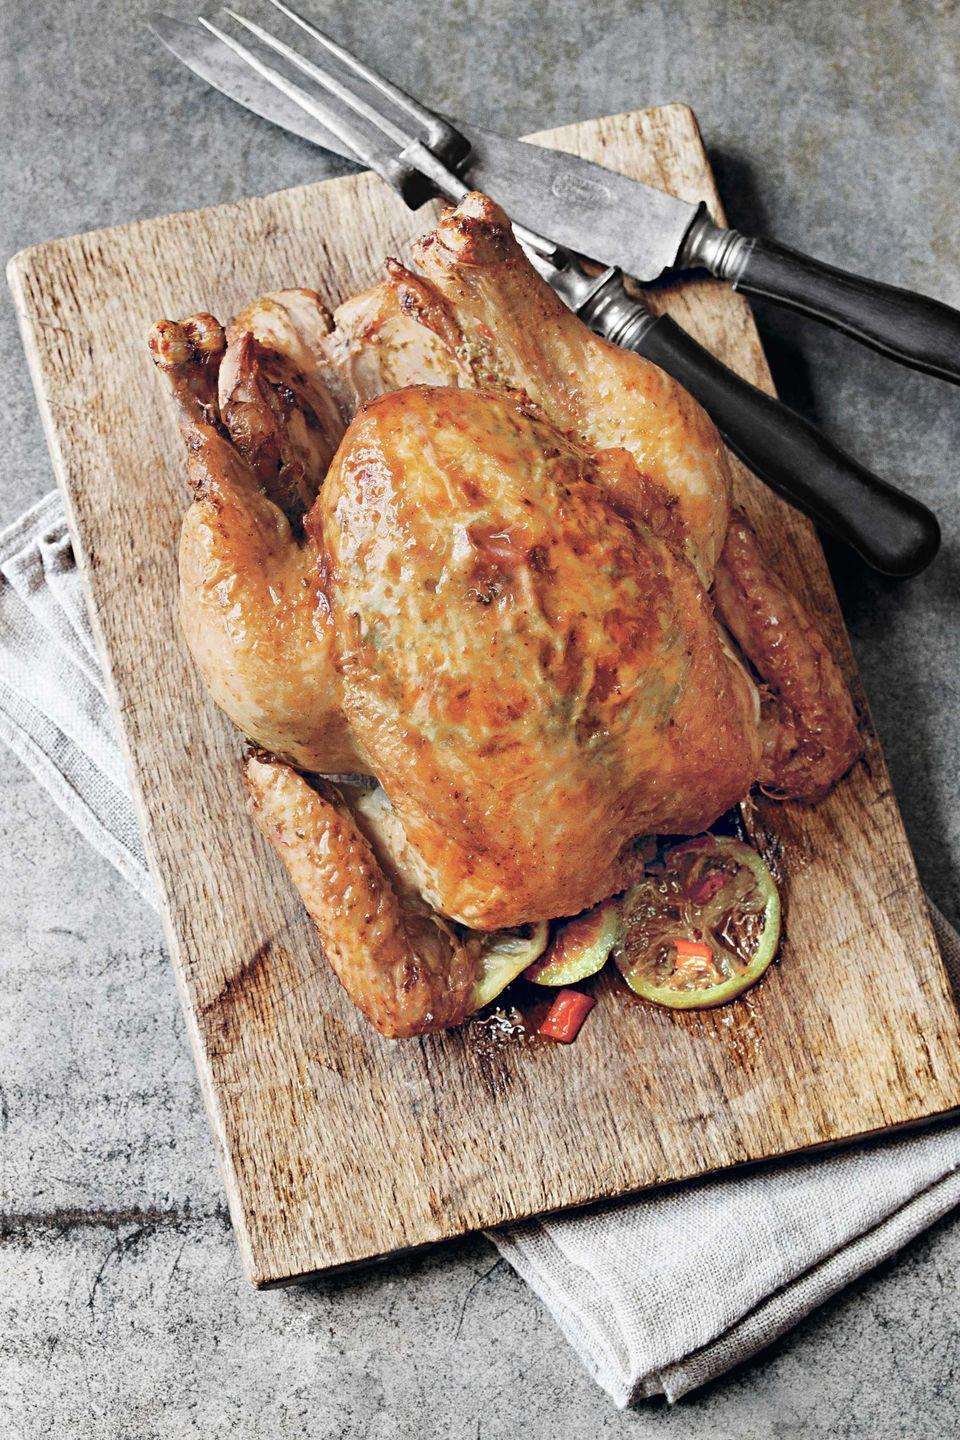 "<p>Succulent, golden-skinned chicken with cooked apples makes a memorable and mouthwatering meal.</p><p><strong><a href=""https://www.countryliving.com/food-drinks/recipes/a1041/apple-sage-roastedchicken-panjuices-3148/"" rel=""nofollow noopener"" target=""_blank"" data-ylk=""slk:Get the recipe"" class=""link rapid-noclick-resp"">Get the recipe</a>.</strong></p>"